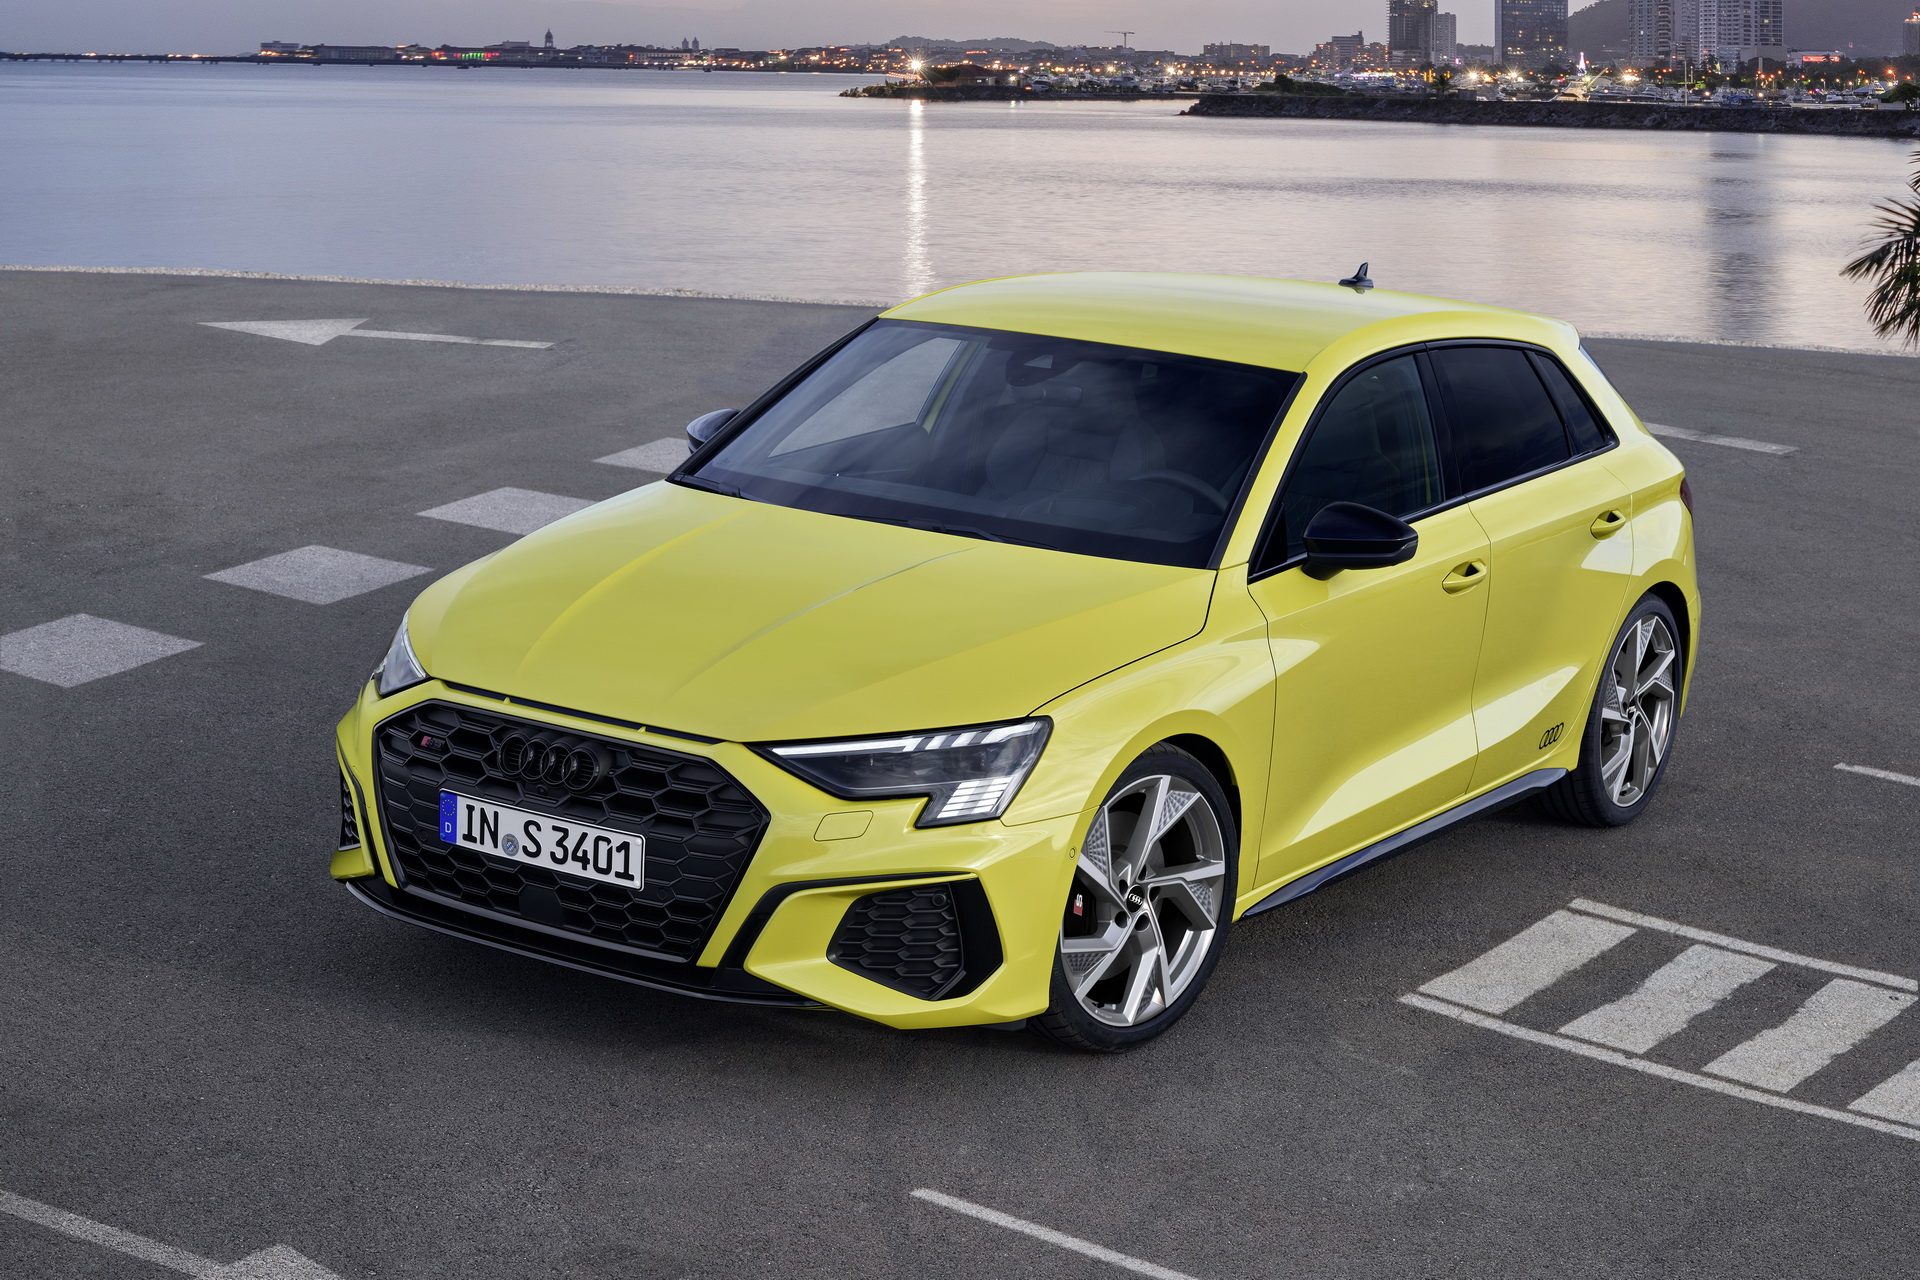 2021-audi-s3-is-quicker-and-sexier-than-before-first-review-finds-148753_1.jpg